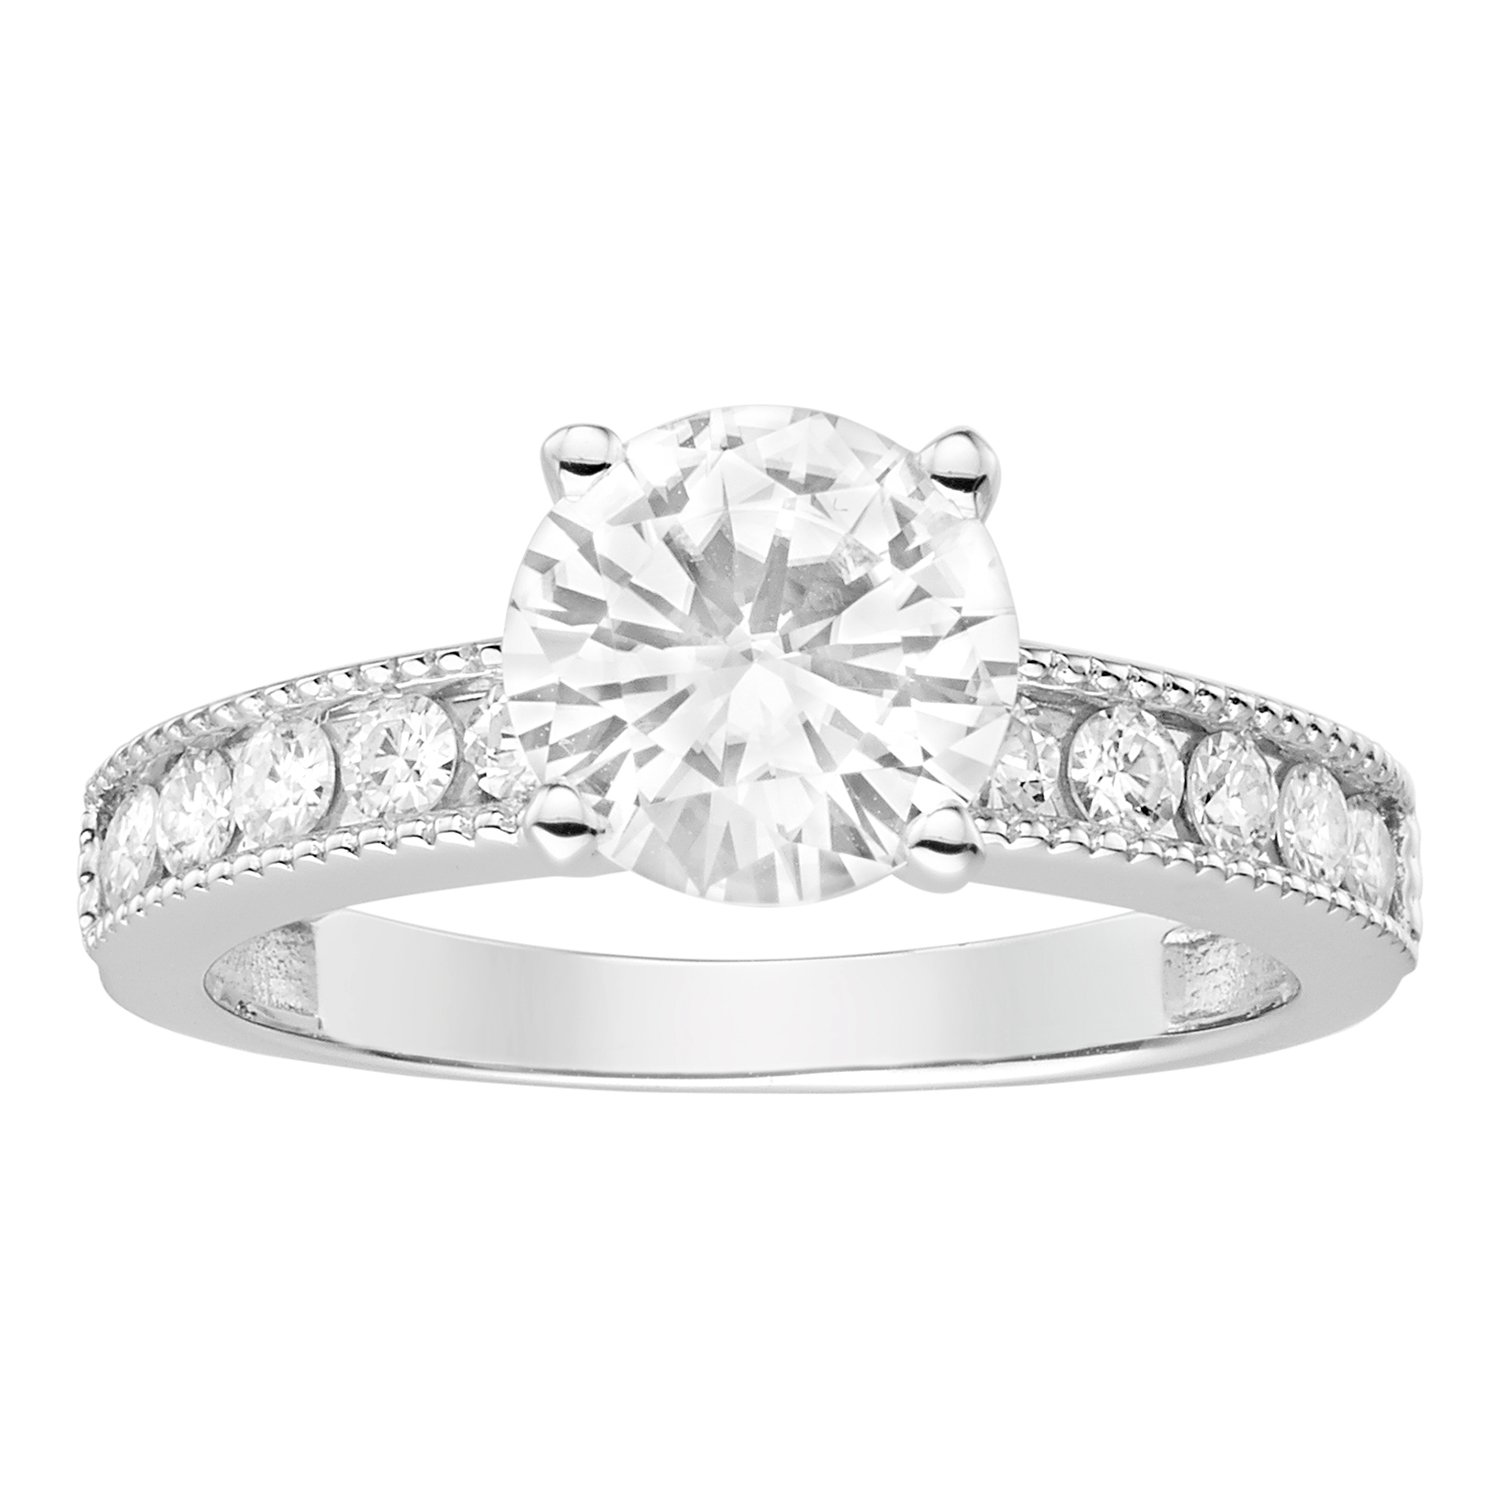 14K White Gold Round Brilliant Cut 7.5mm Moissanite Engagement Ring - size 6, 1.80cttw DEW By Charles & Colvard